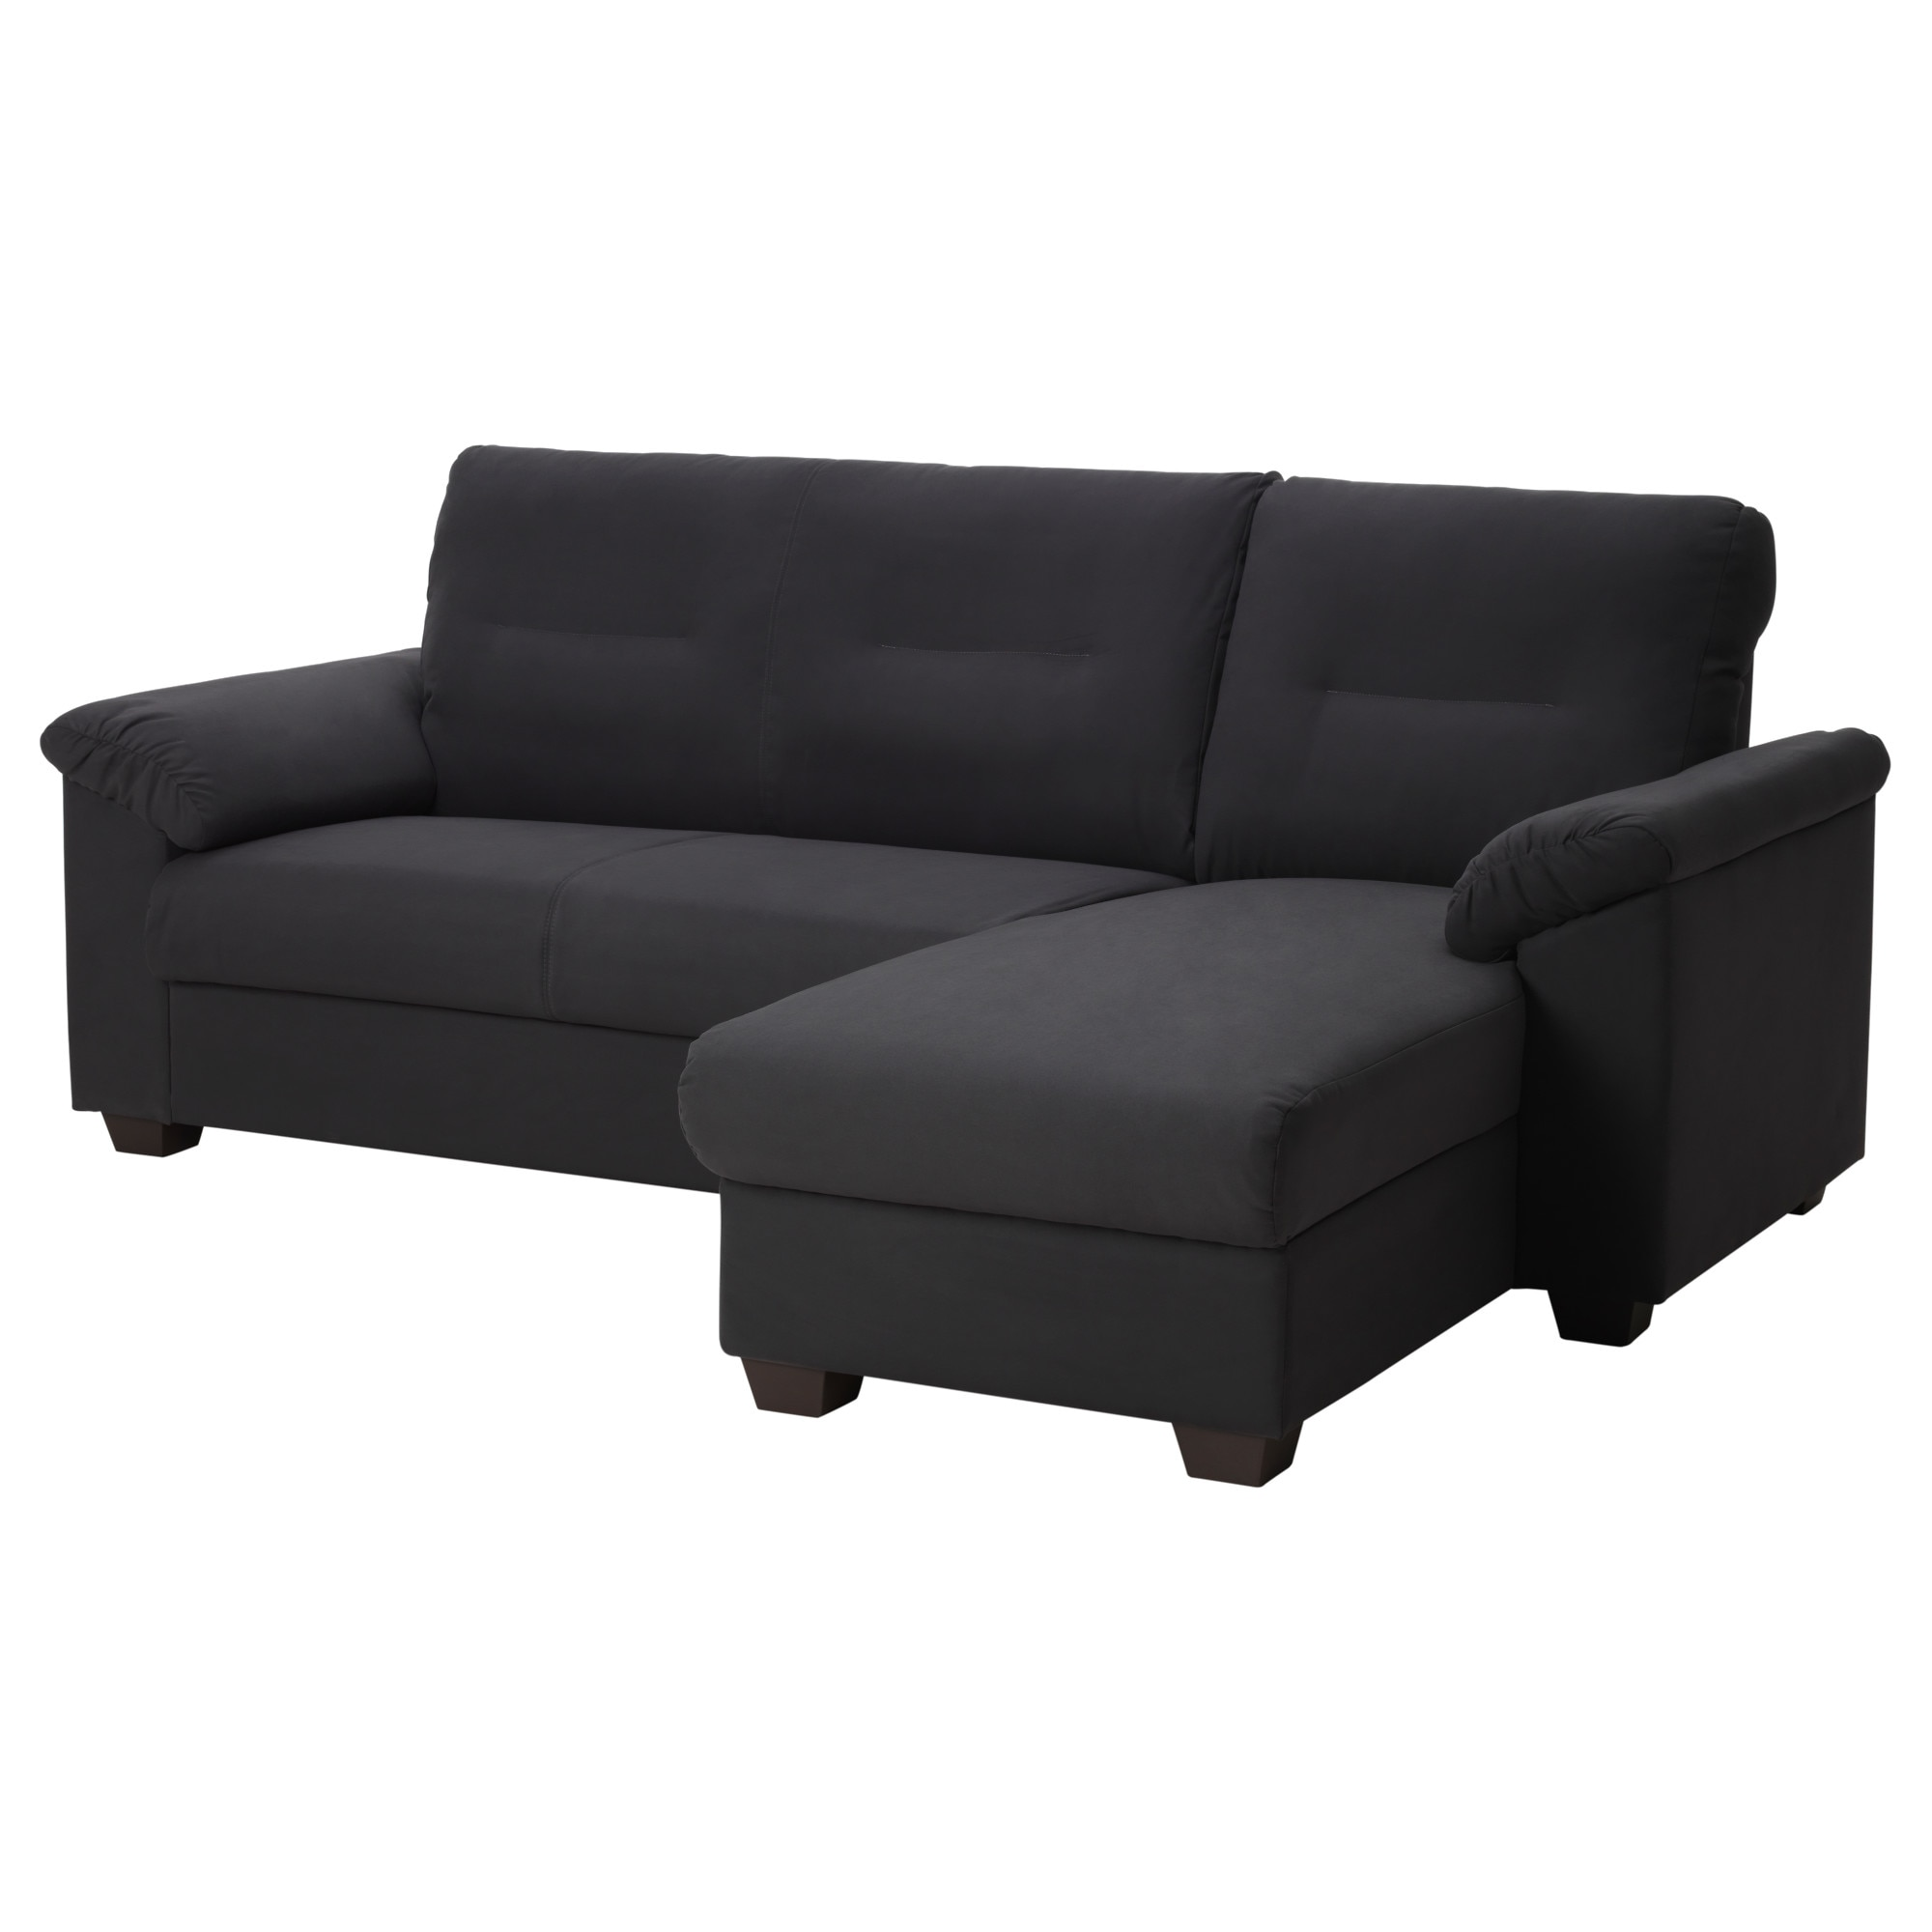 small sofas ikea small sofa 2 seater sofa ikea. Black Bedroom Furniture Sets. Home Design Ideas